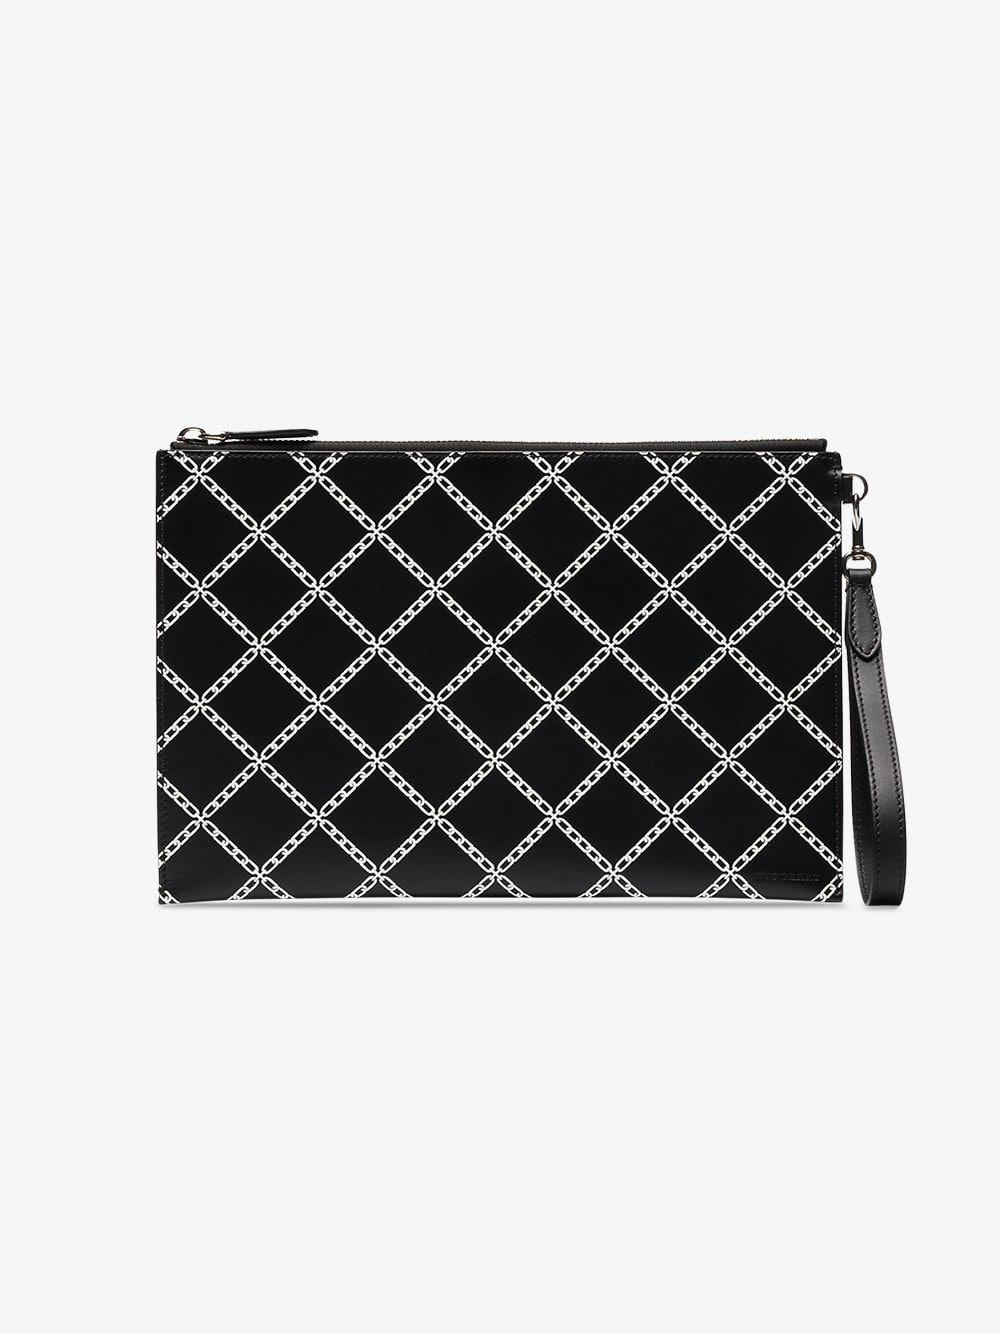 bd7a04ff940e Burberry Black And White Edinburgh Check Leather Zip Pouch in Black for Men  - Lyst